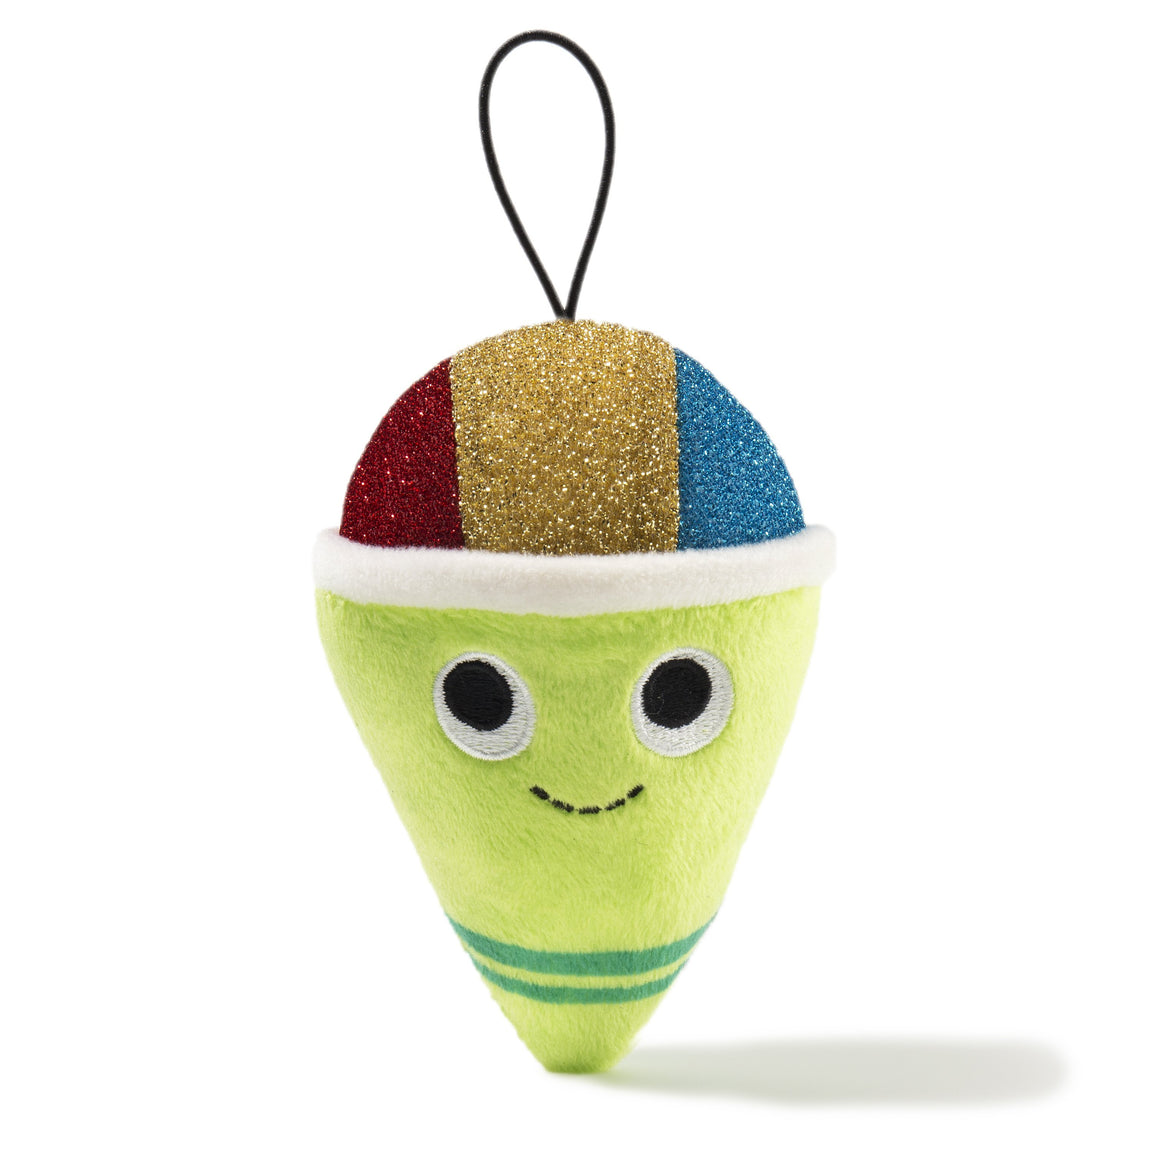 100% Polyester - Yummy World Small Snow Cone Plush